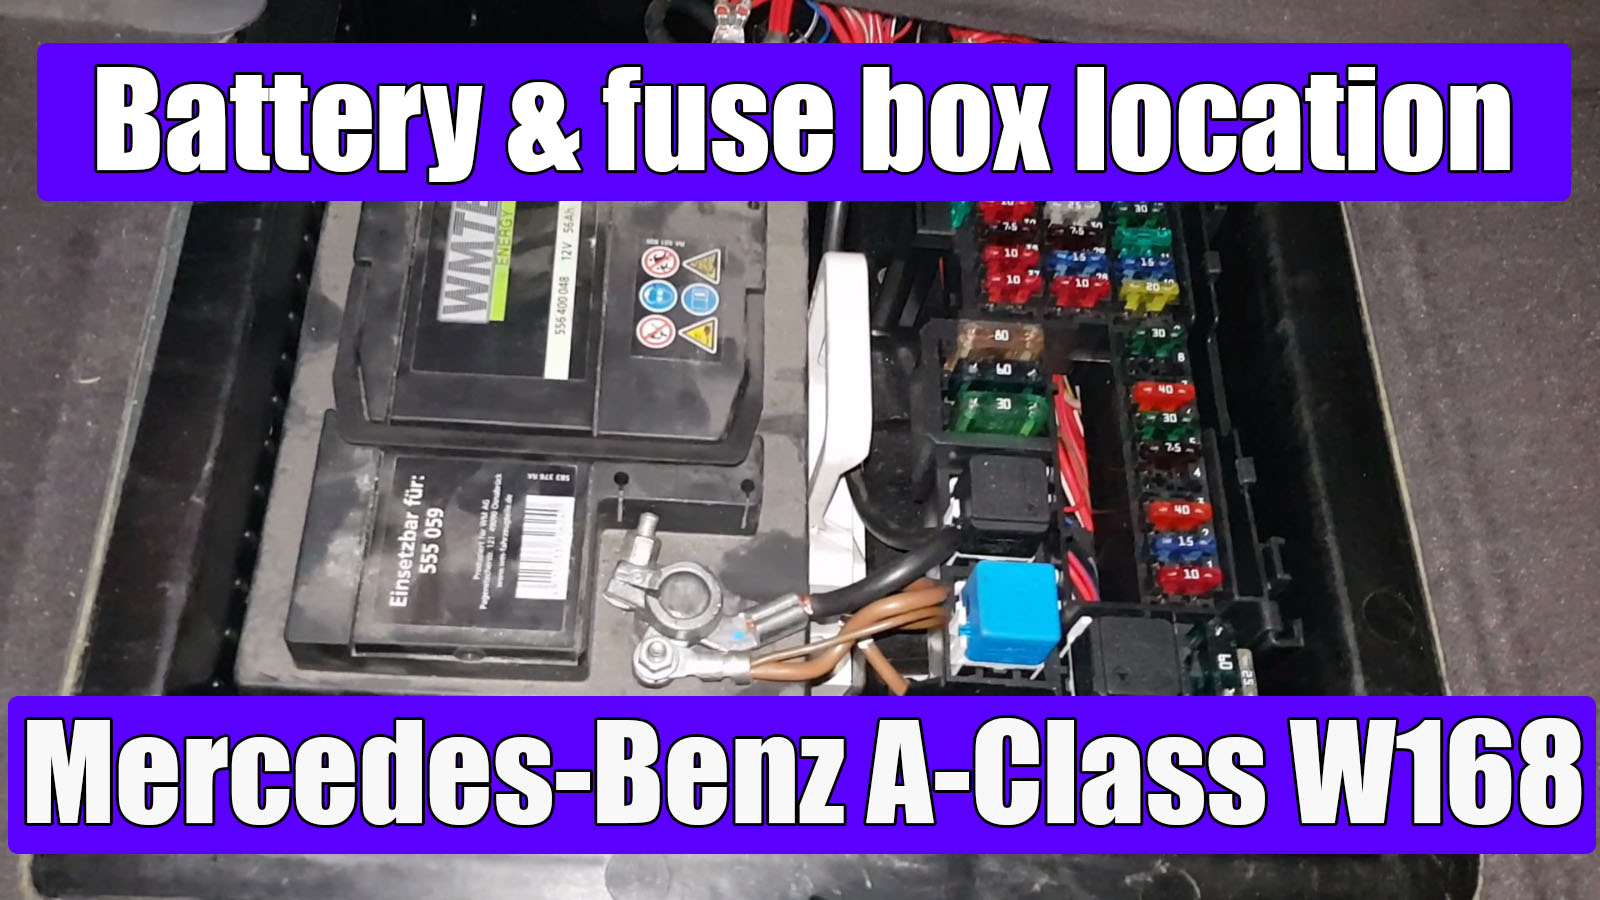 mercedes benz a class w168 battery and main fuse box location video mercedes [ 1600 x 900 Pixel ]